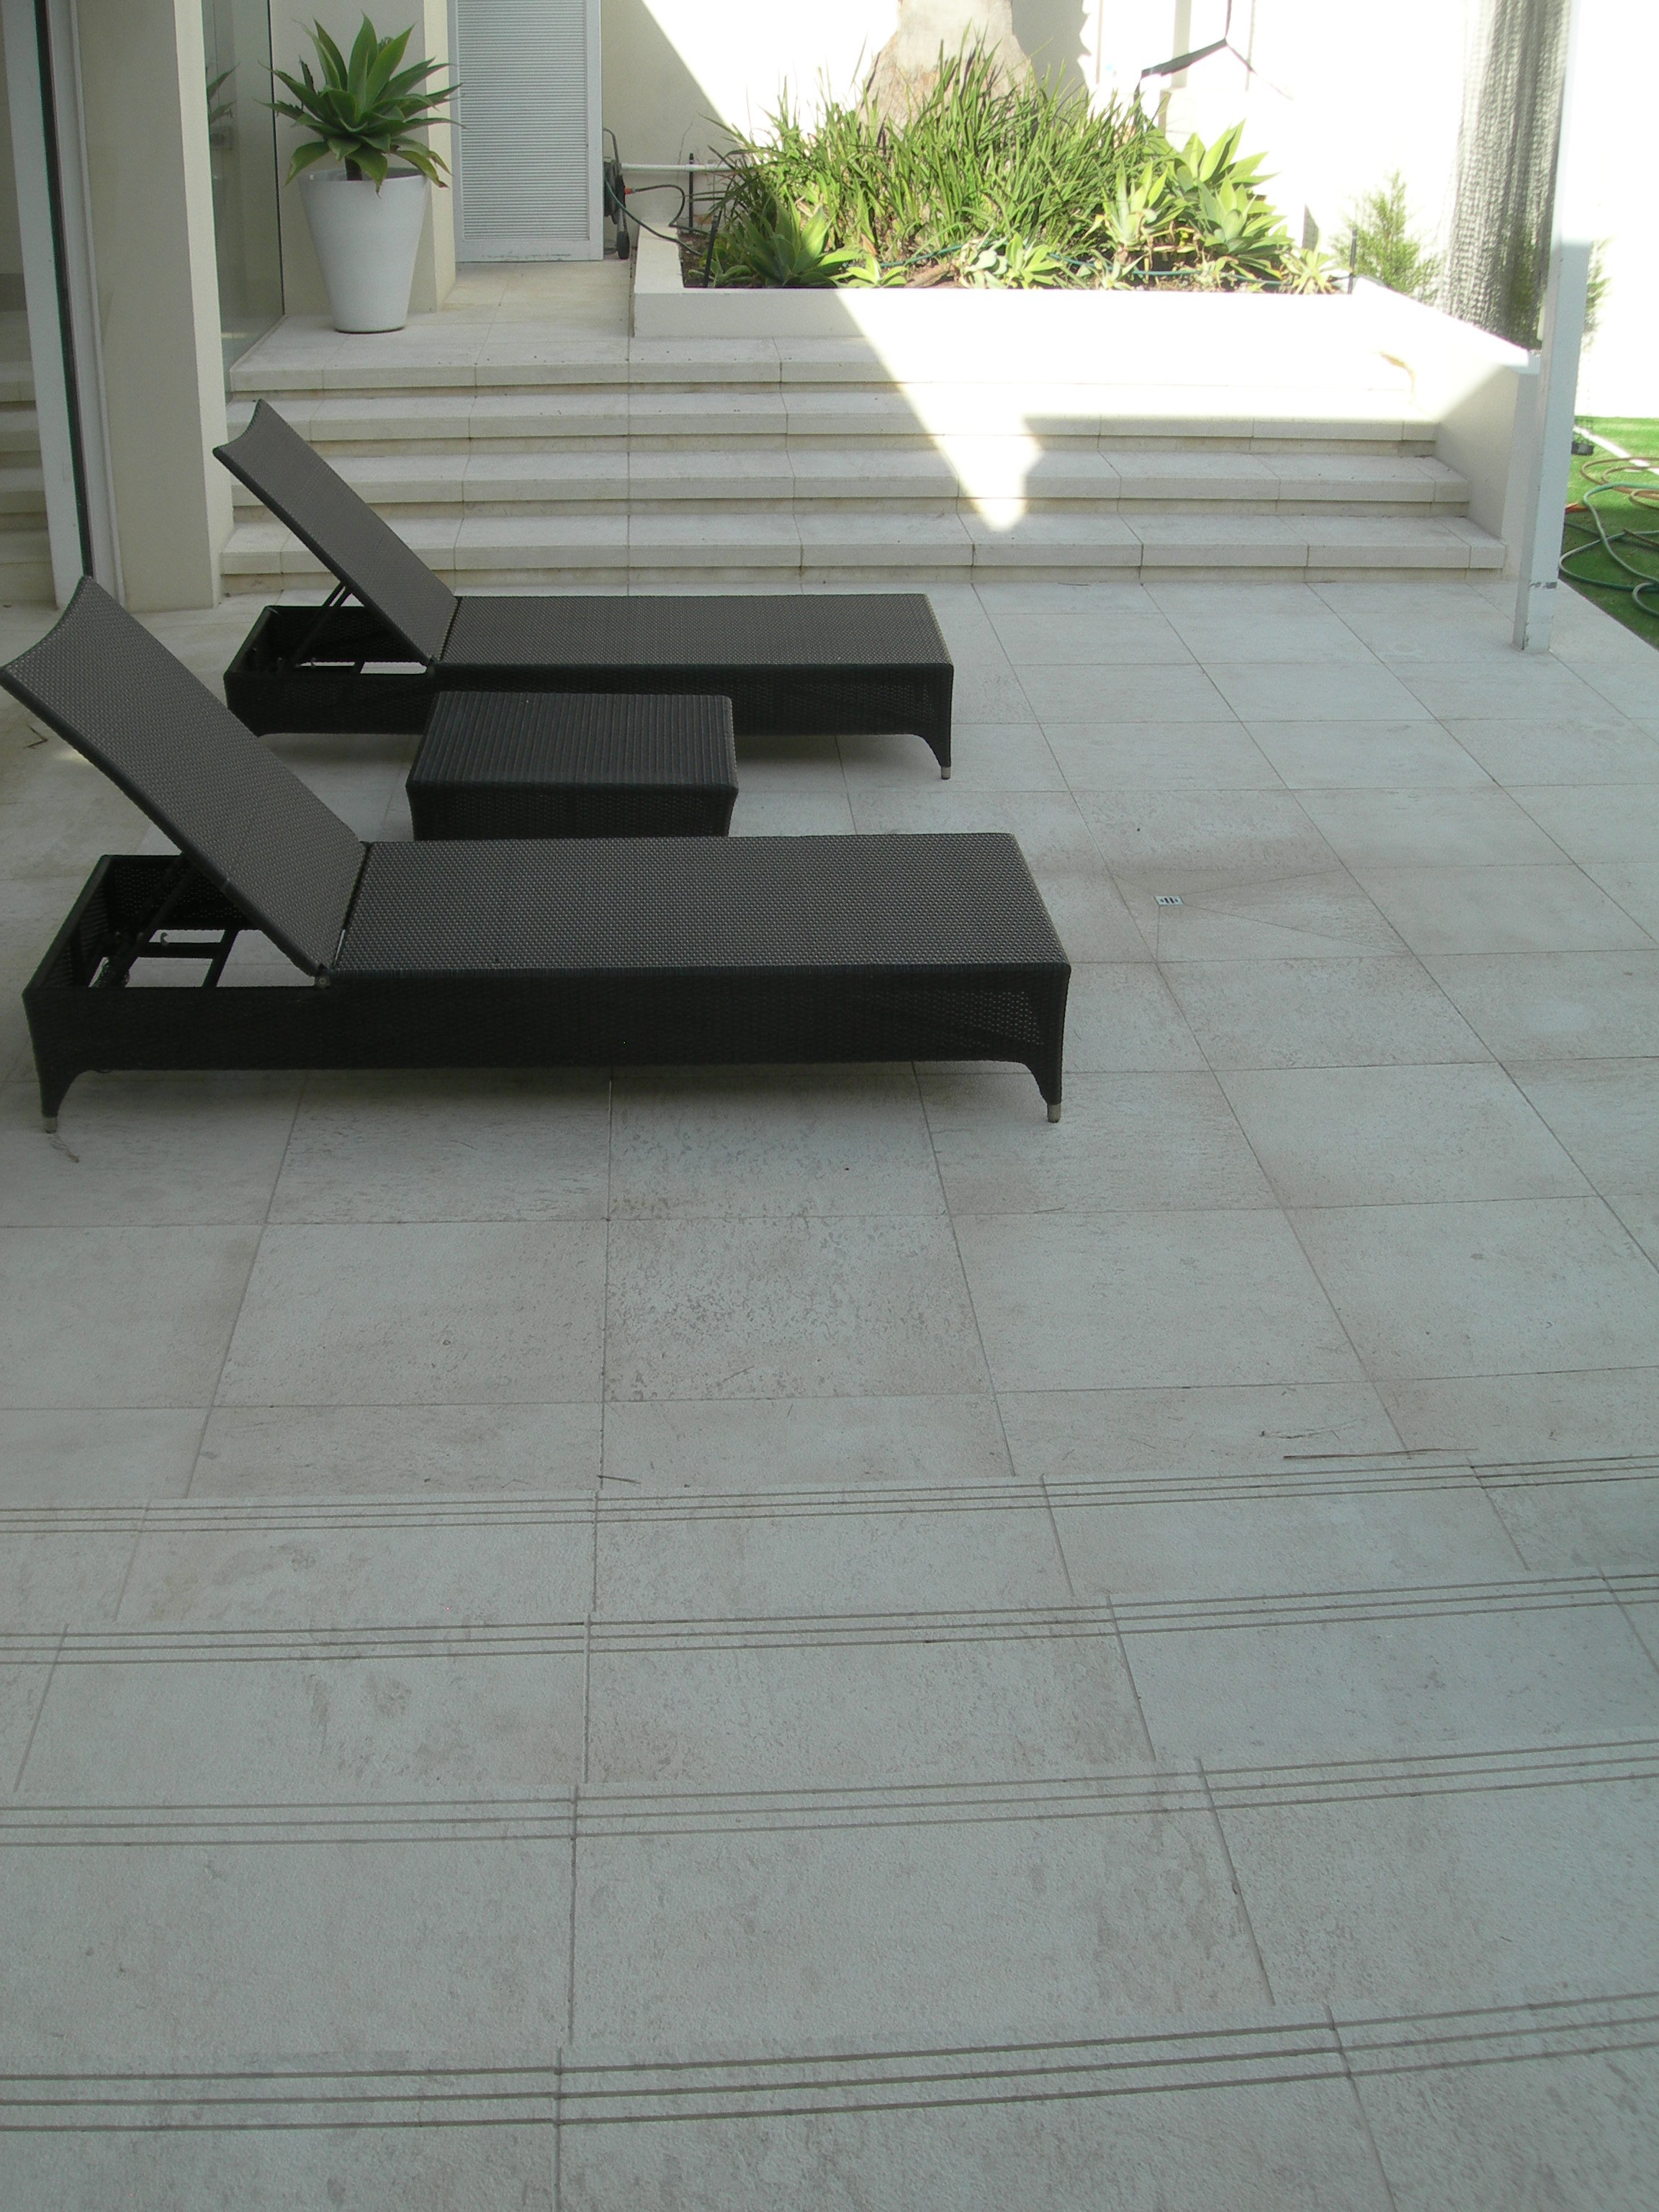 Outdoor and Alfrecso Tiling